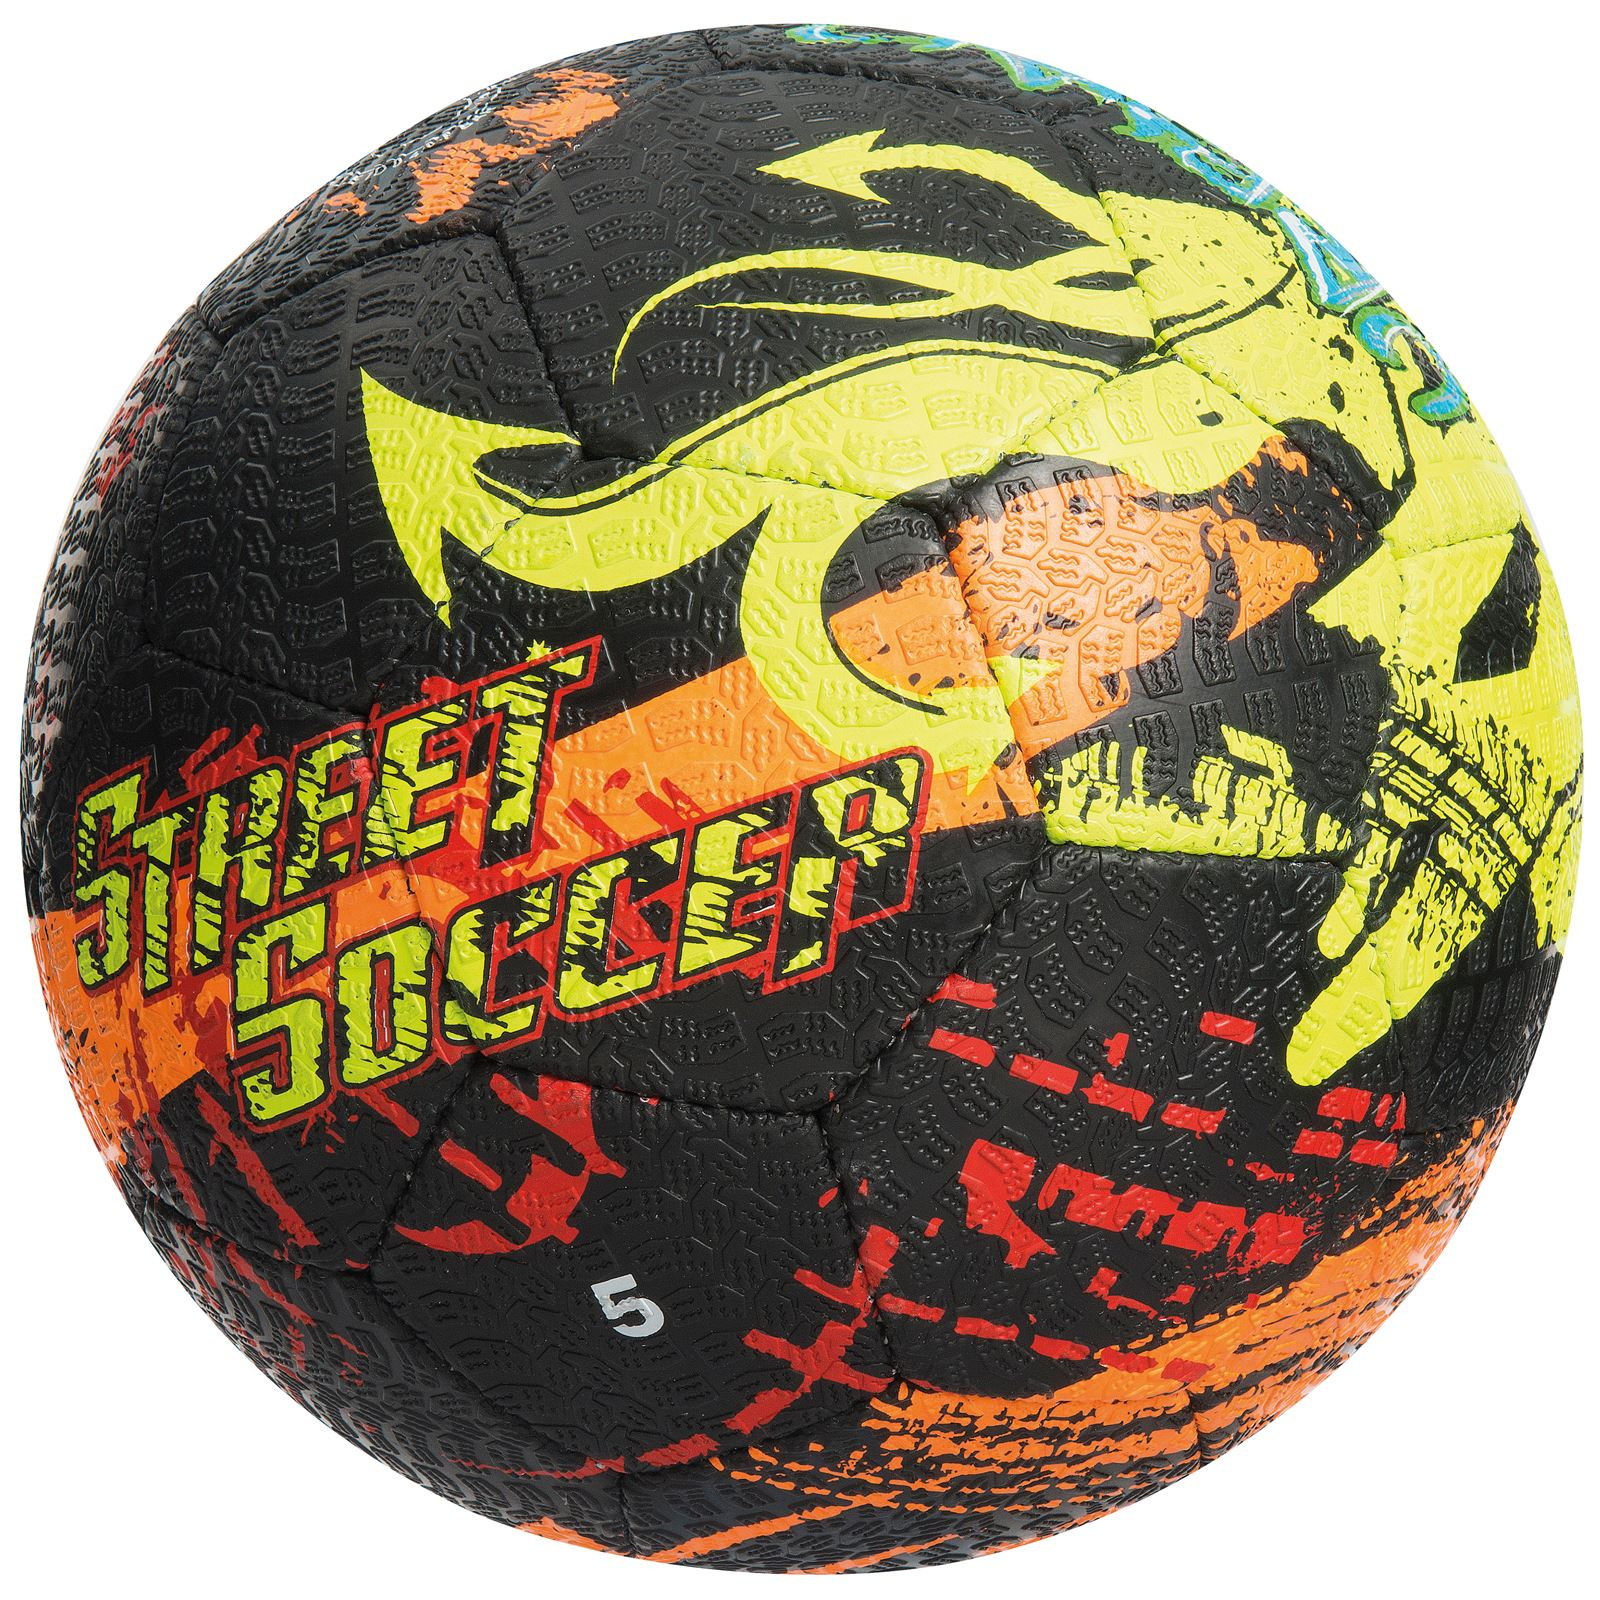 Precision-Street-Vortex-Mania-Hard-Ground-Ball-Street-Rubber-Football-Size-4-5 miniatura 4